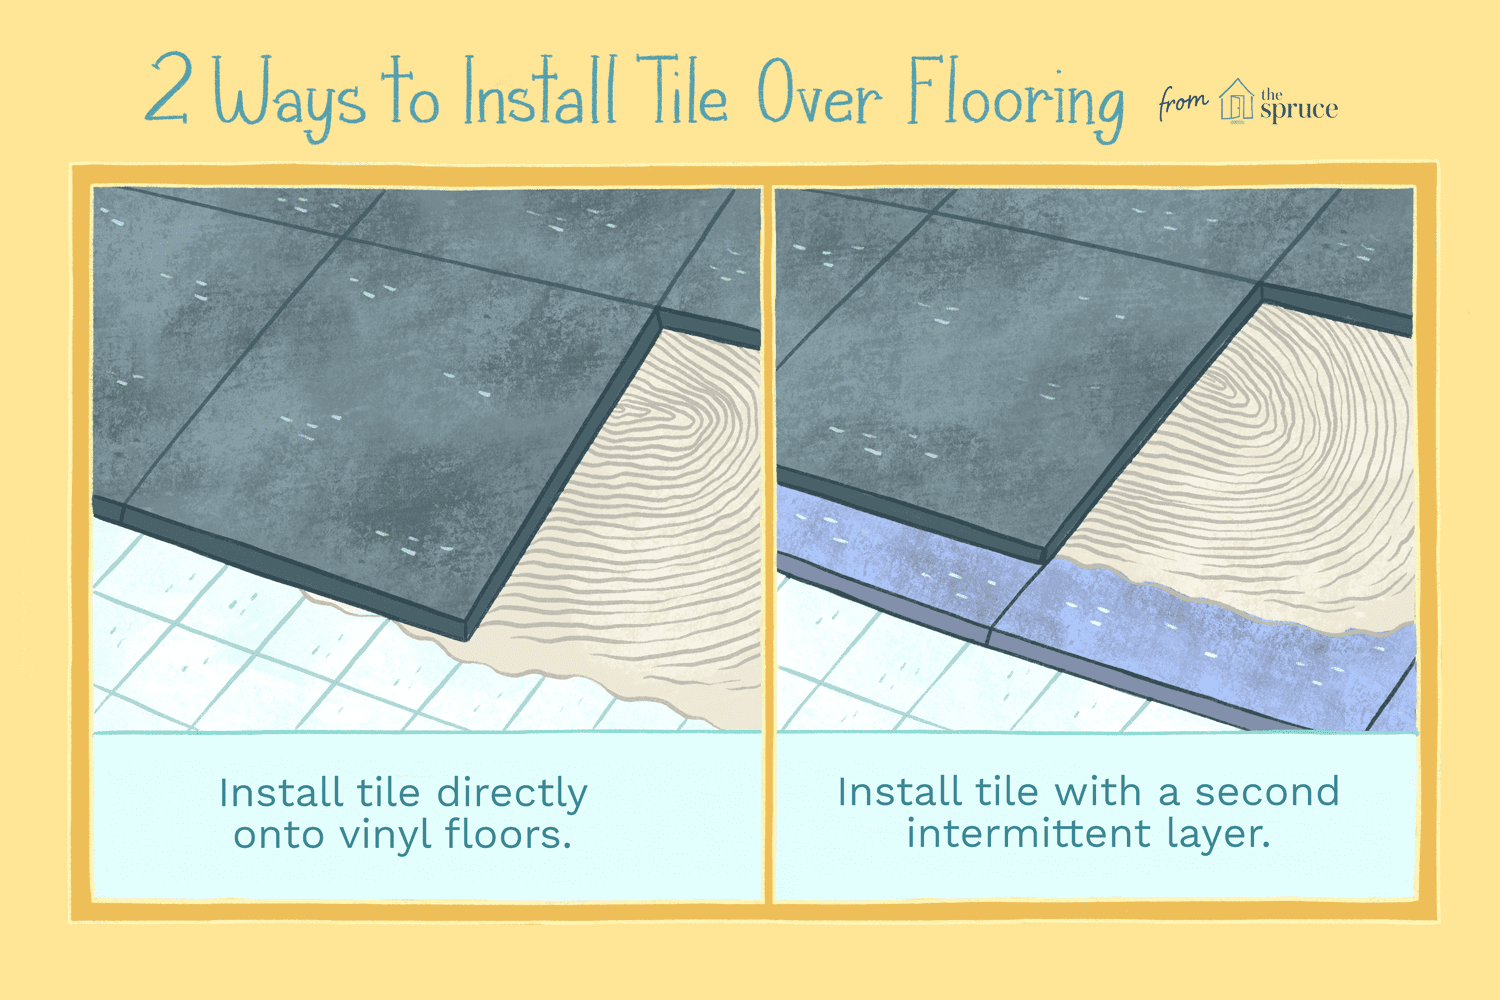 Vinyl Or Linoleum Floor For Ceramic Tile